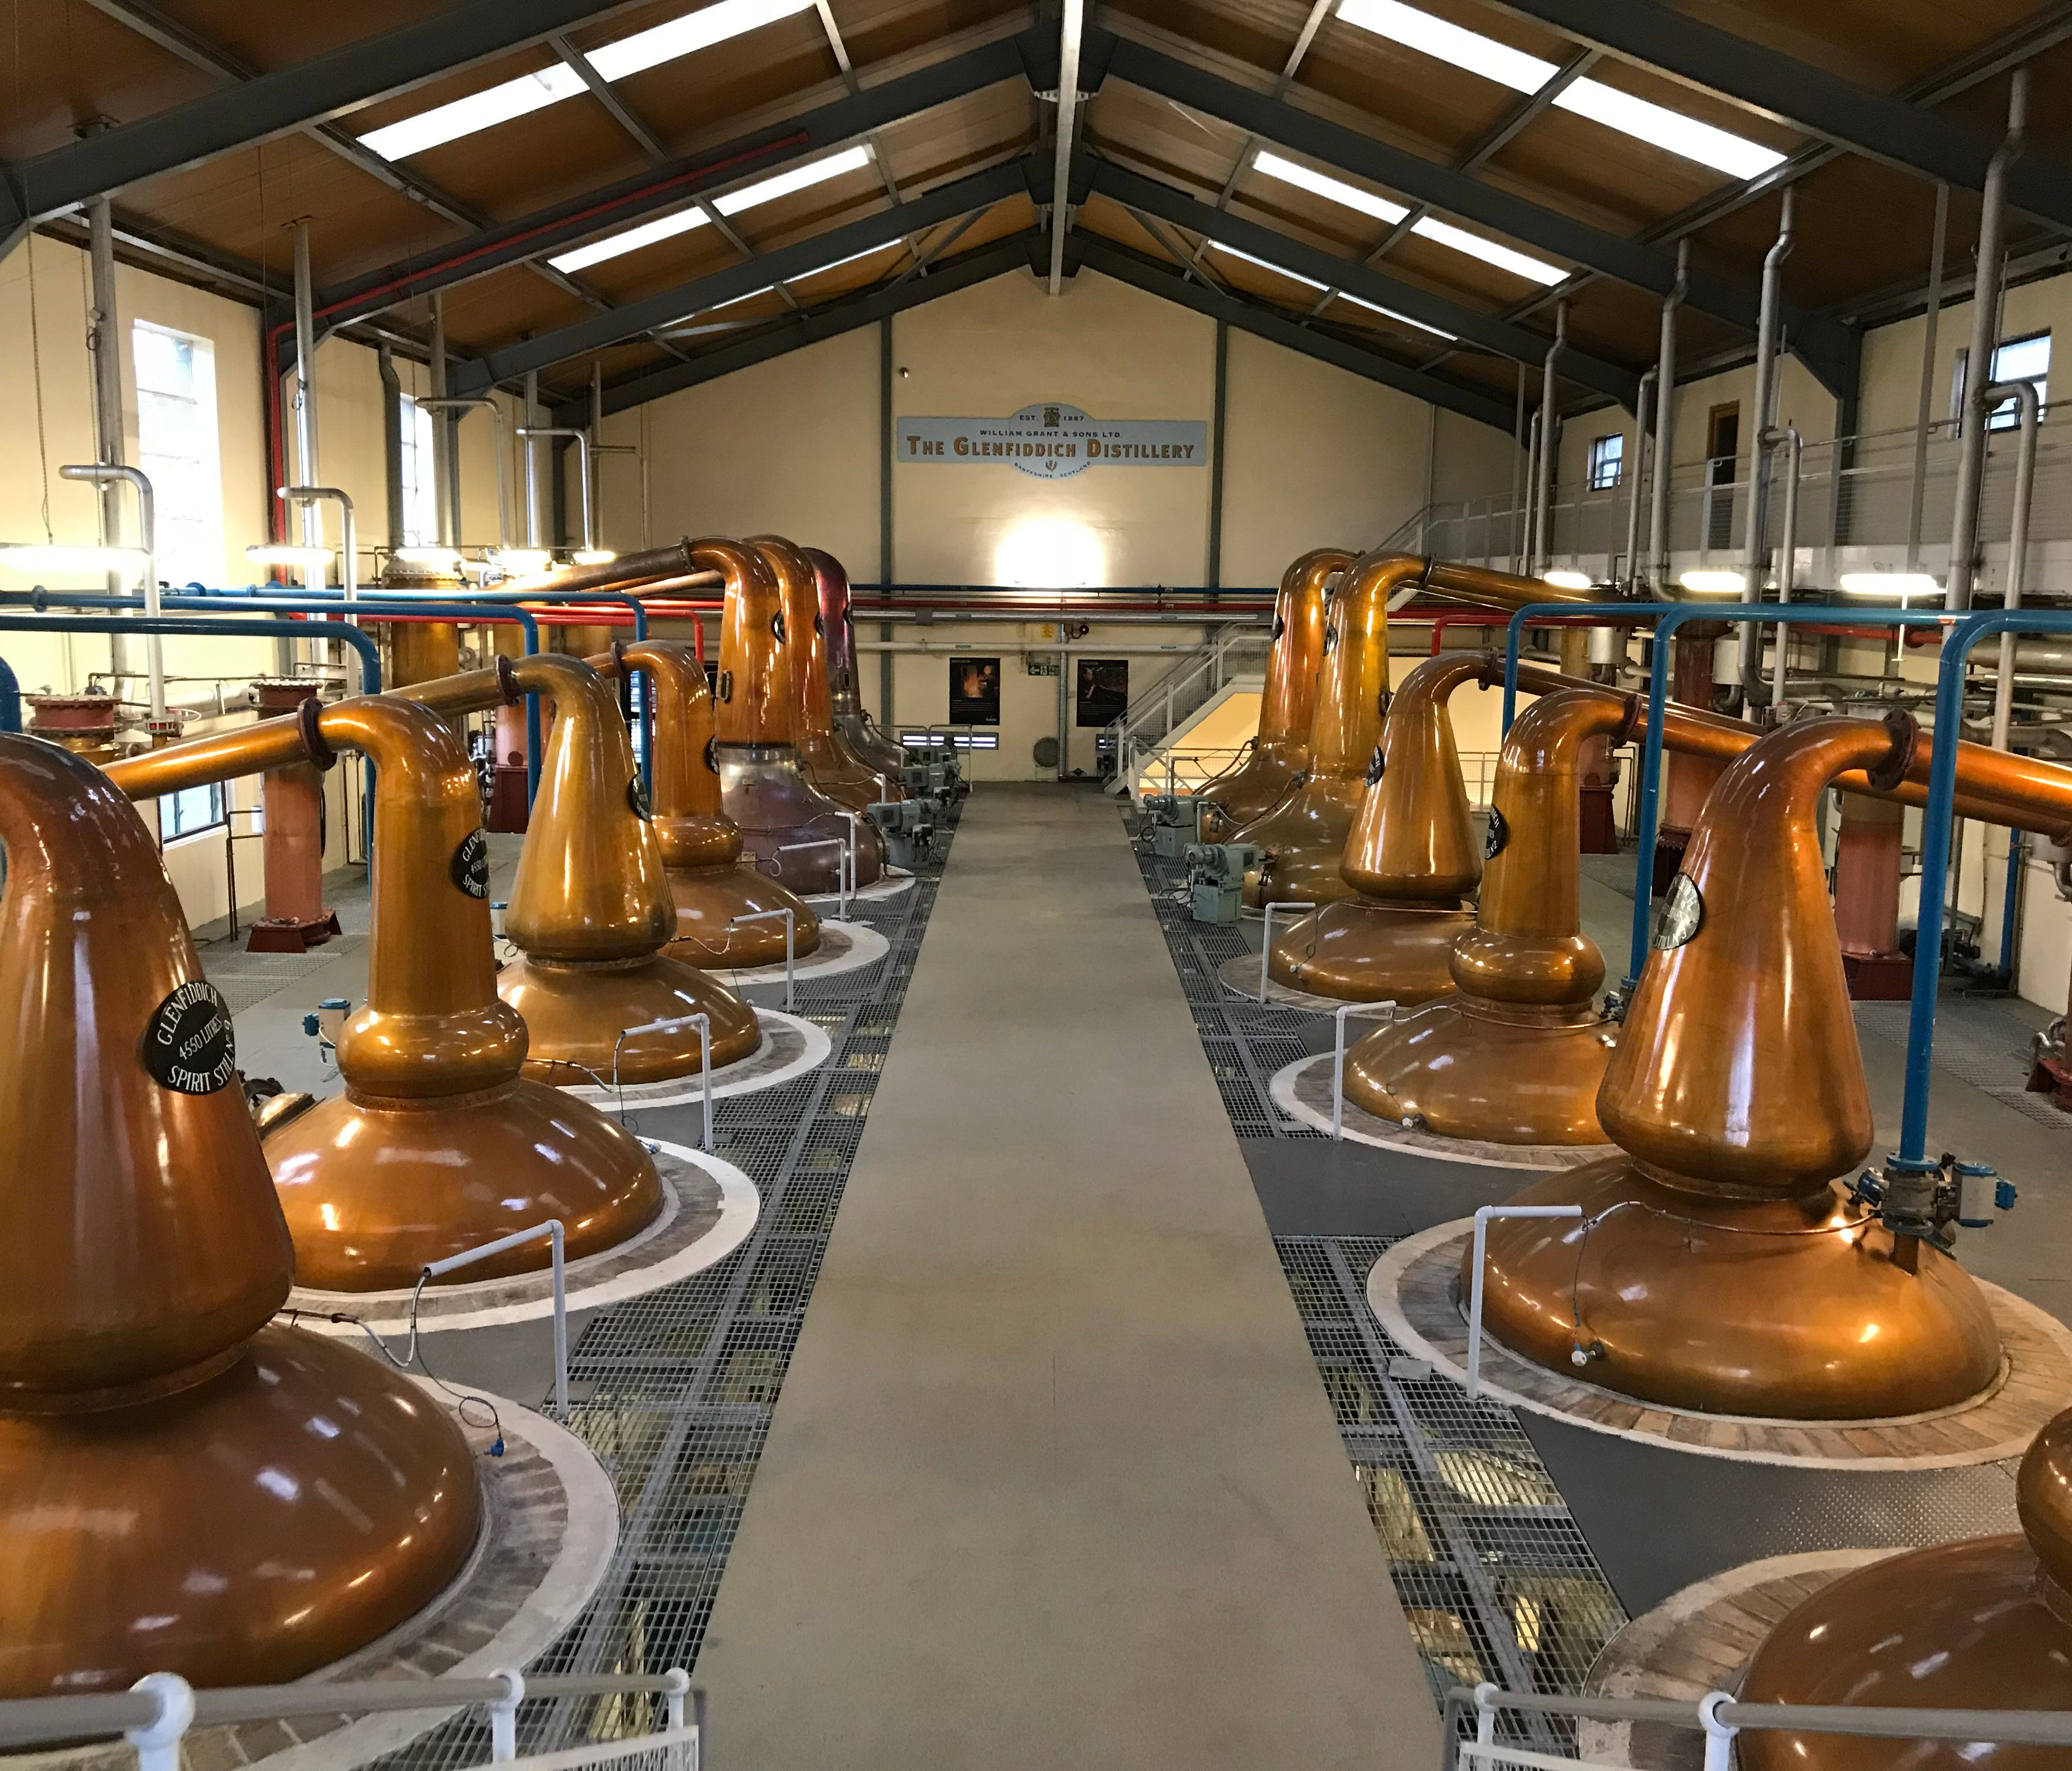 There are two still houses at Glenfiddich with a total of 30 pot stills. These include wash stills for the first distillation, and spirit stills for the second distillation.